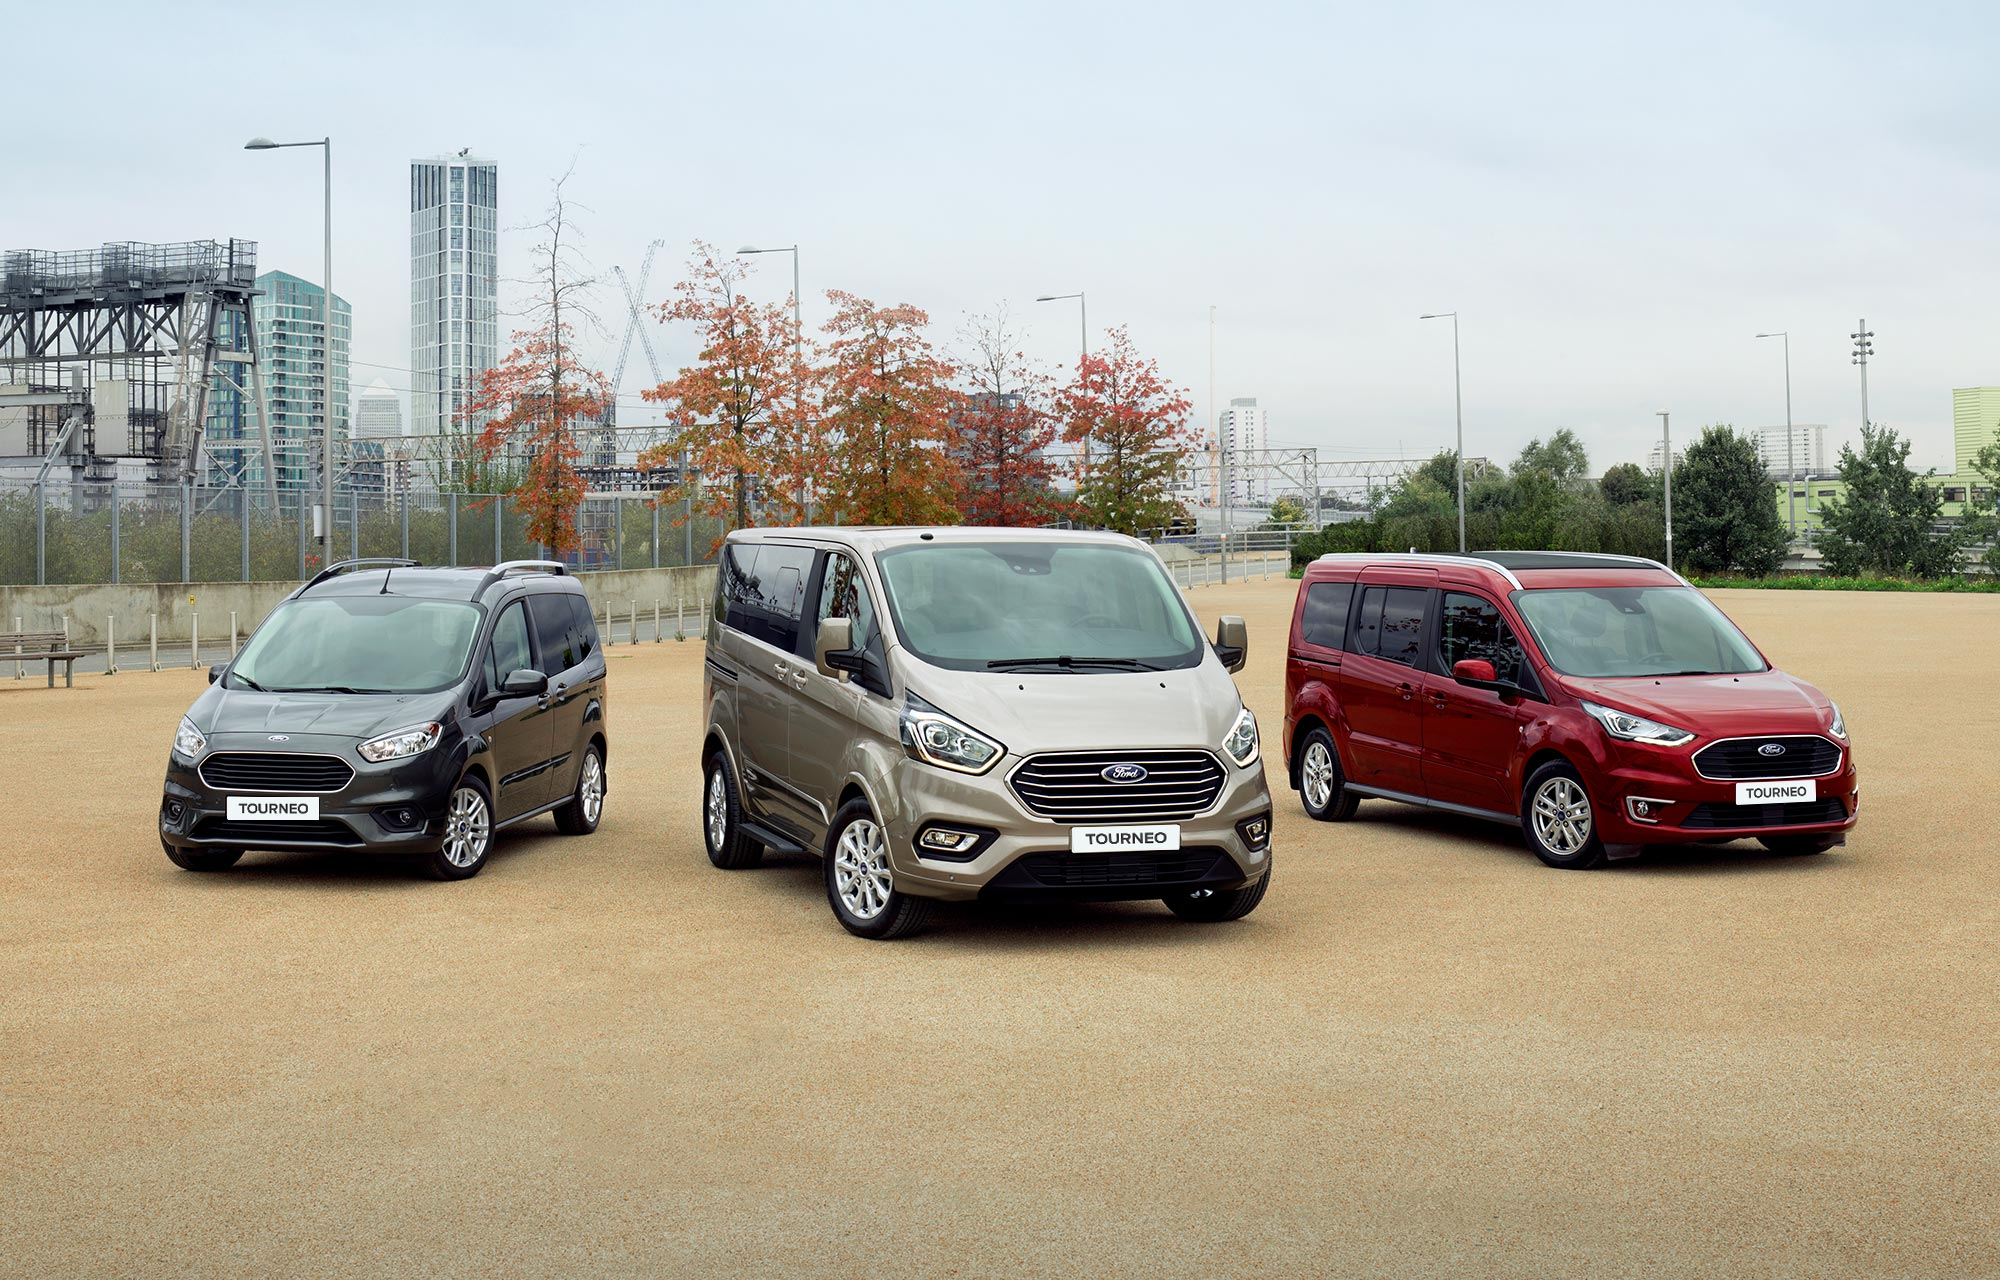 COMING SOON! Nieuwe Ford Tourneo Familie